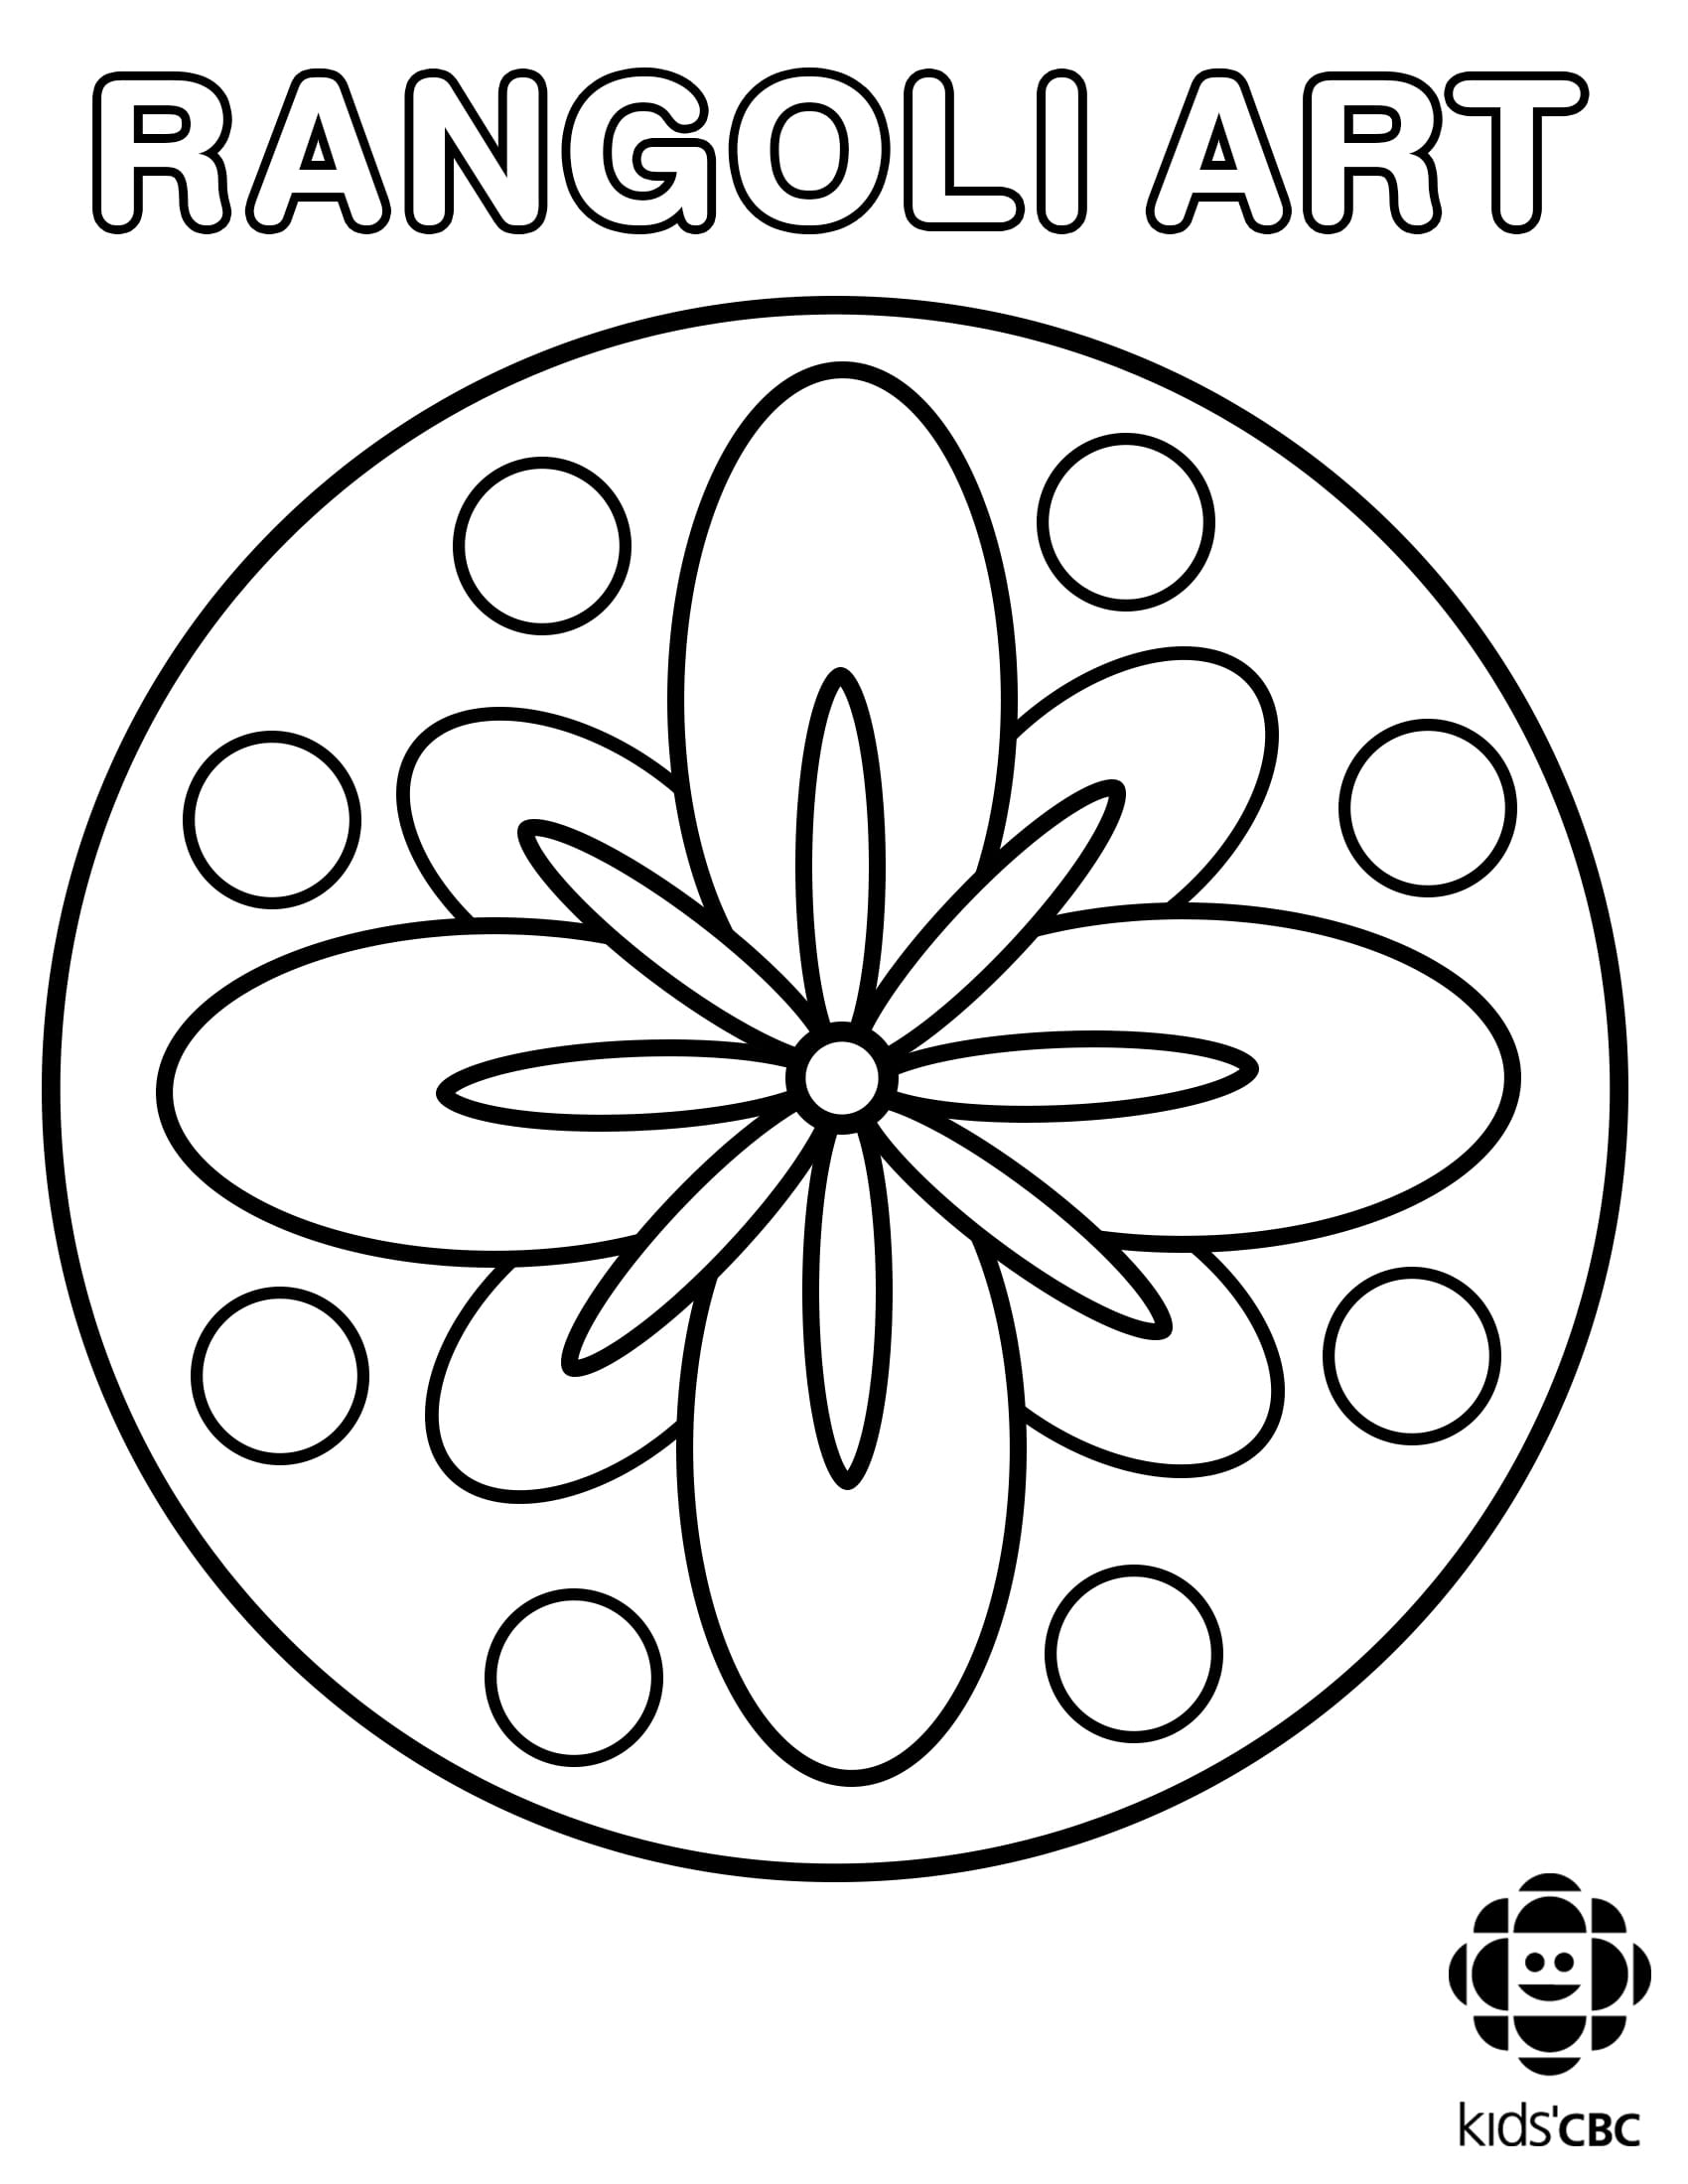 Designn Coloring Pages